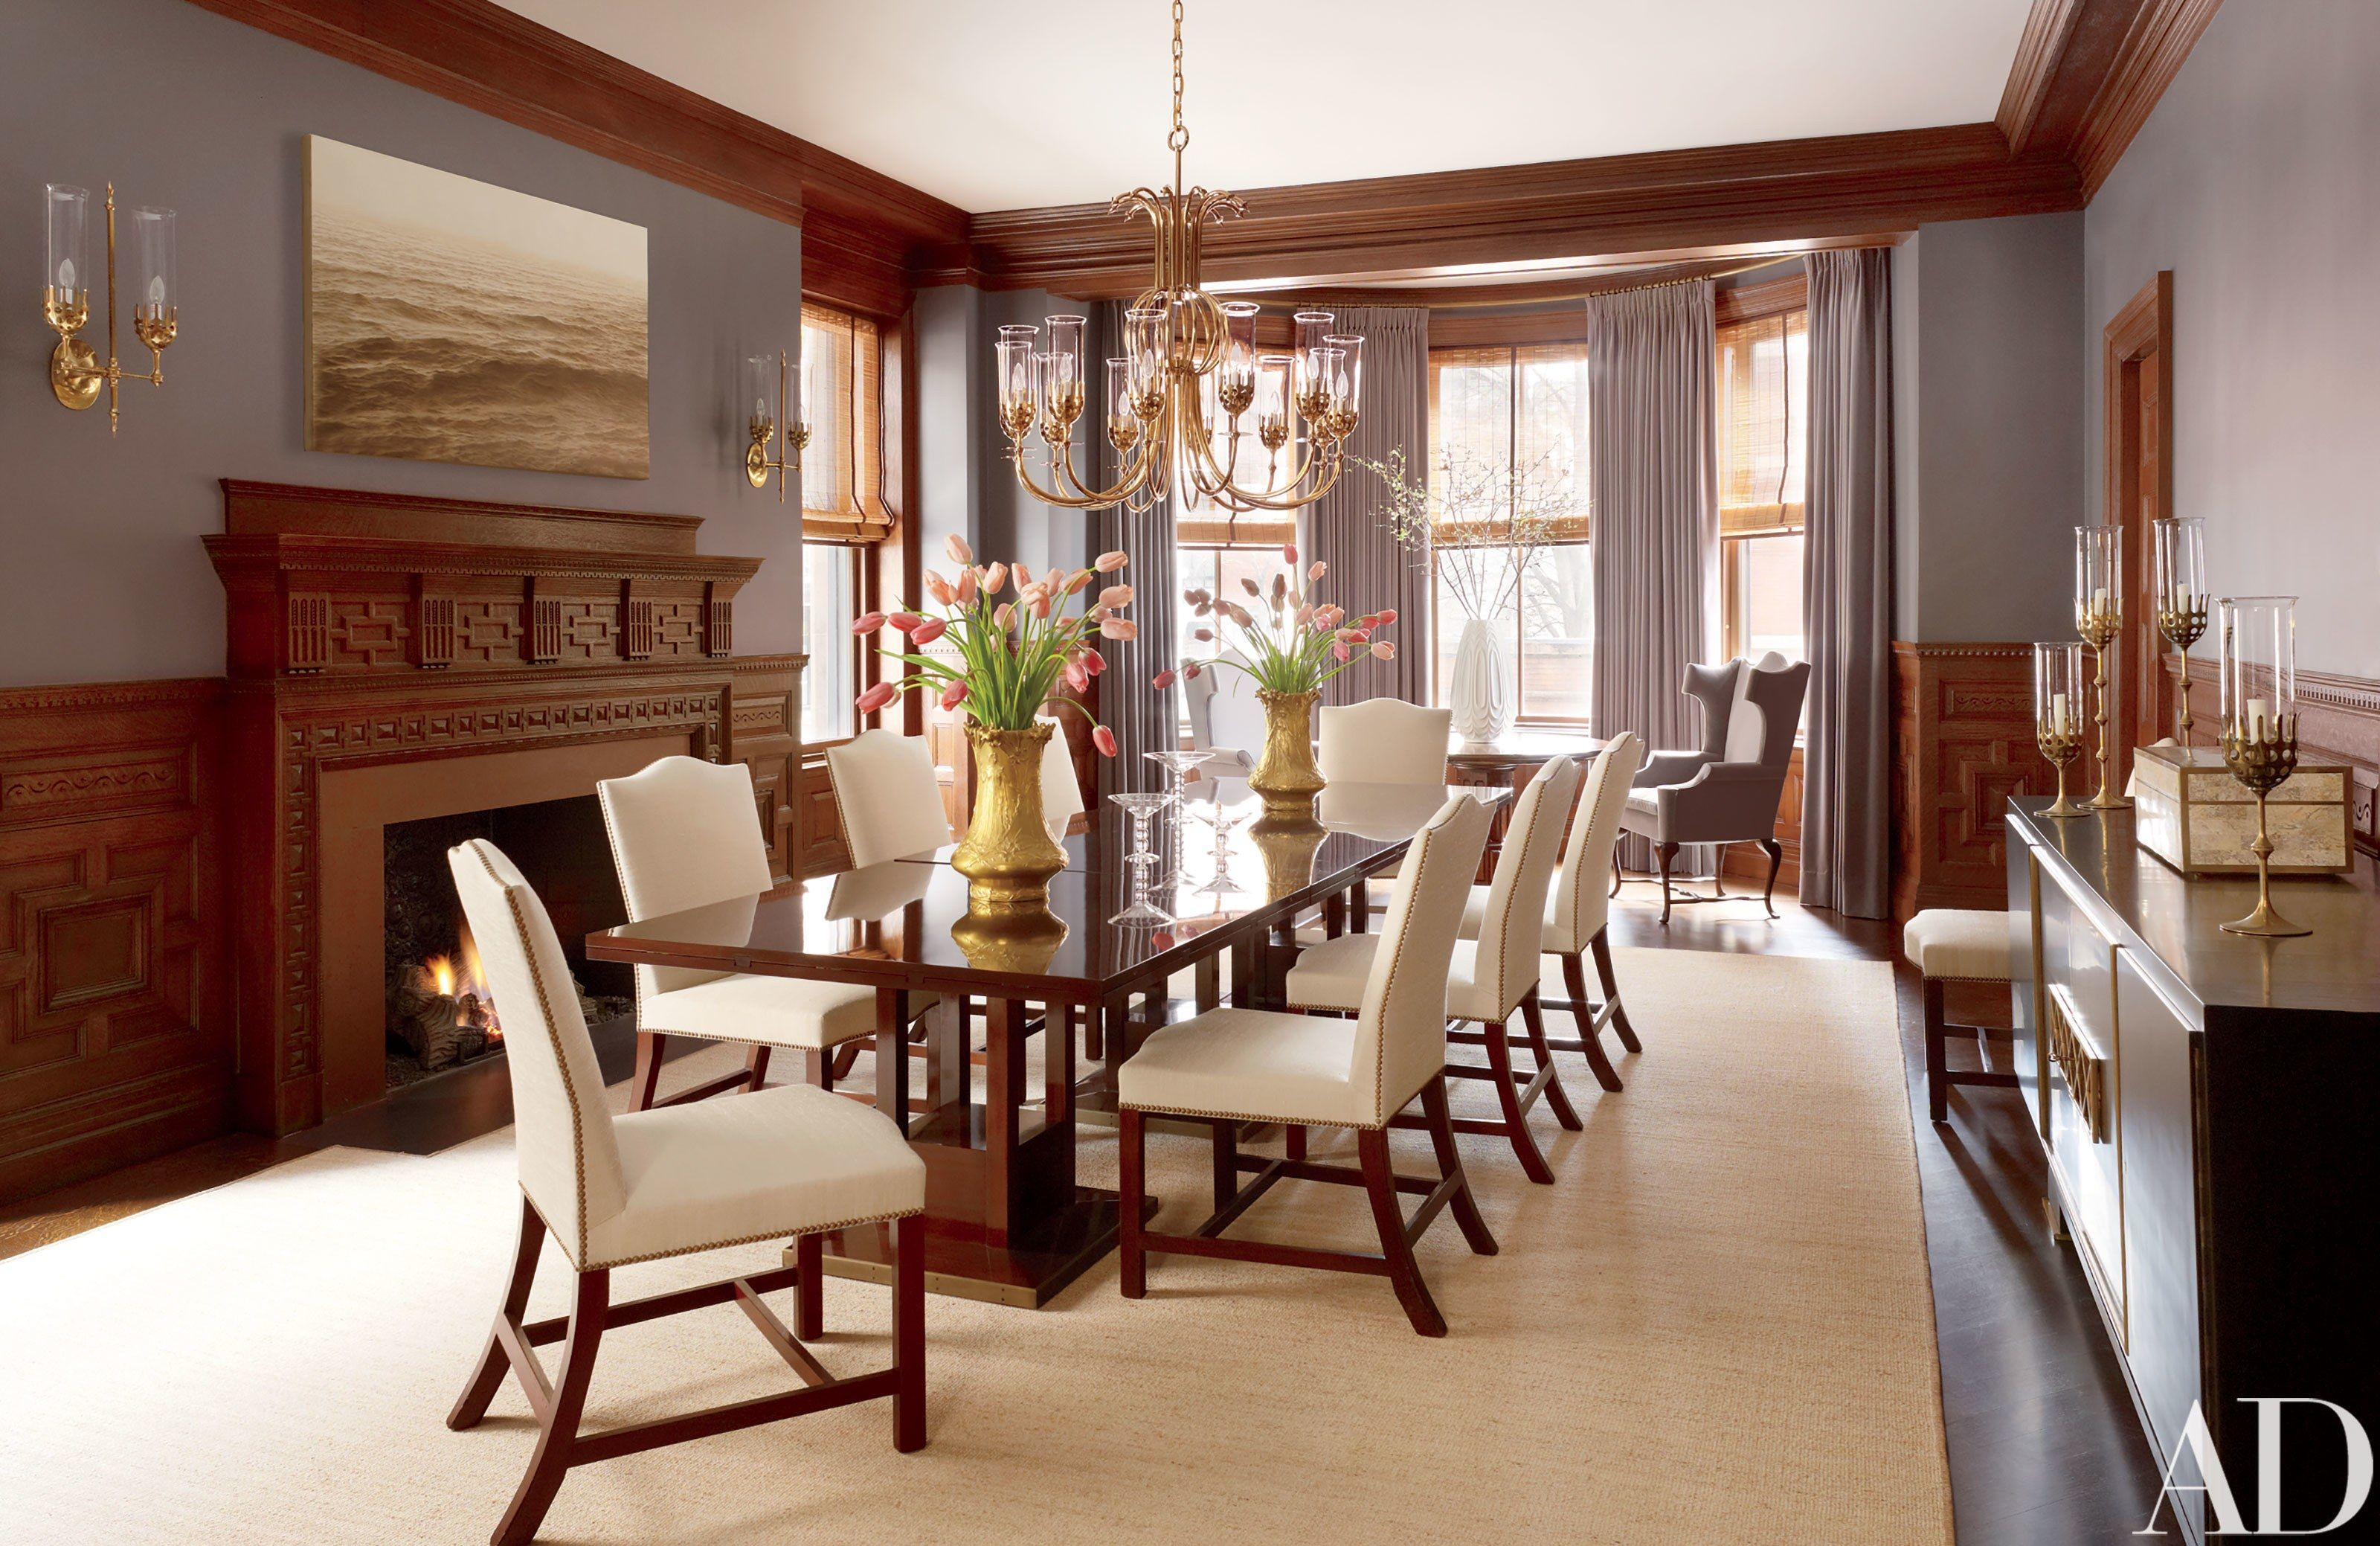 Thad Hayes Combines Two Historic Boston Houses Into One Grand Family Home Large Dining TablesDining Room